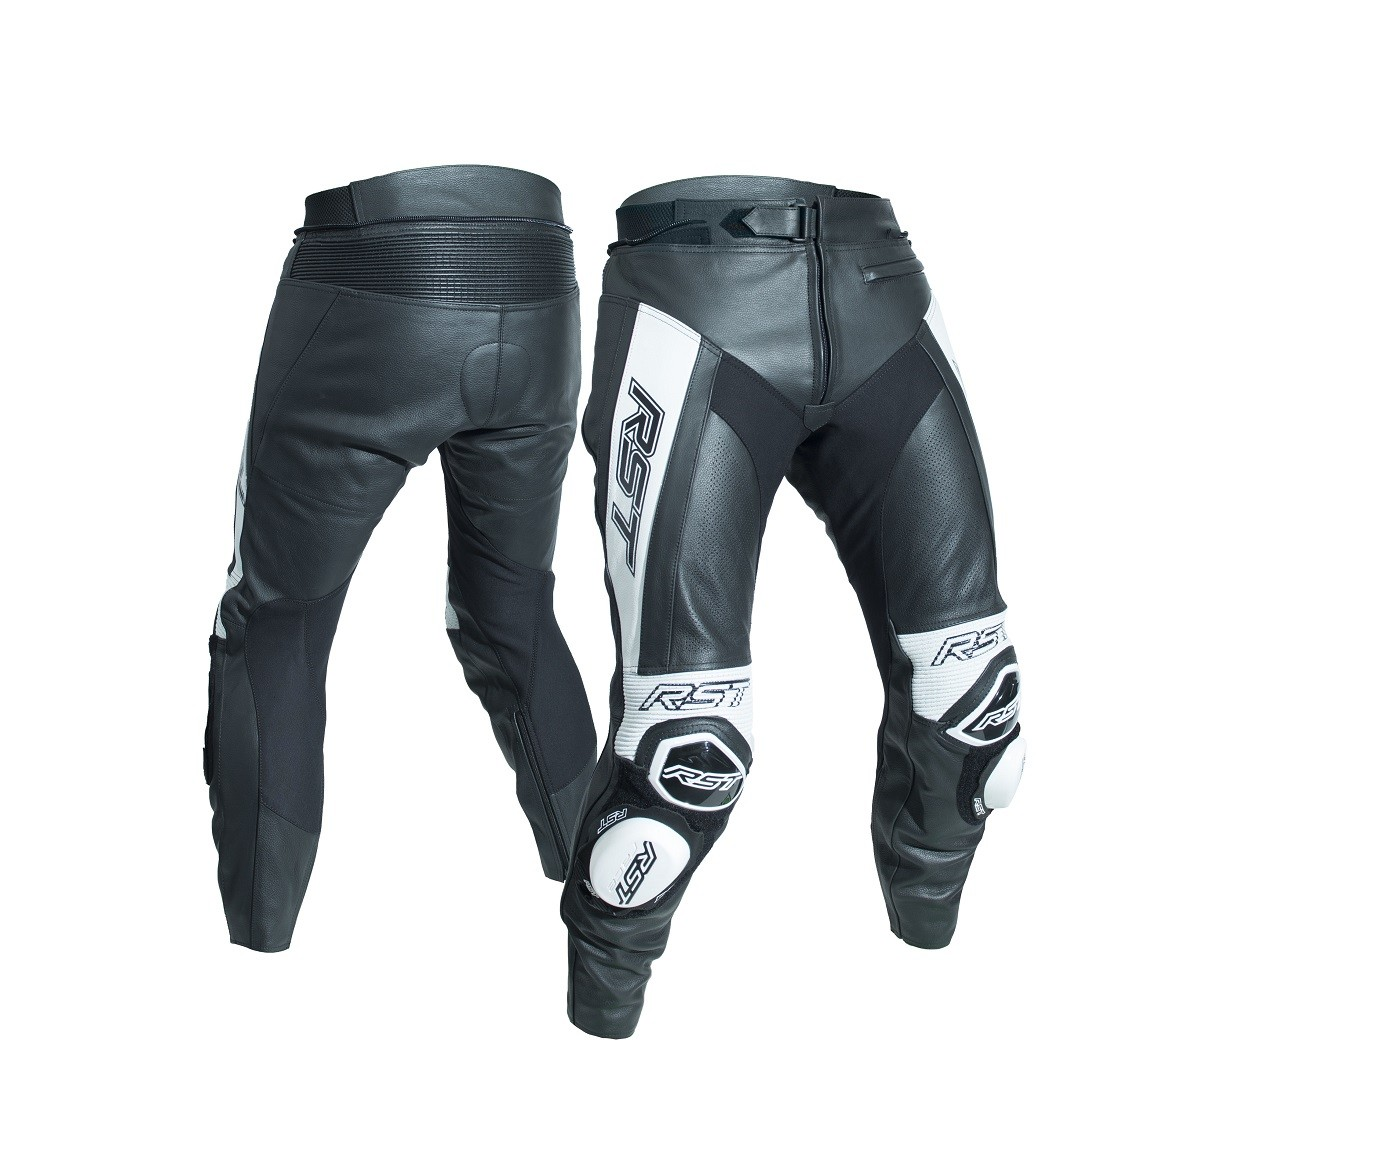 RST Tractech Evo R CE leather jeans